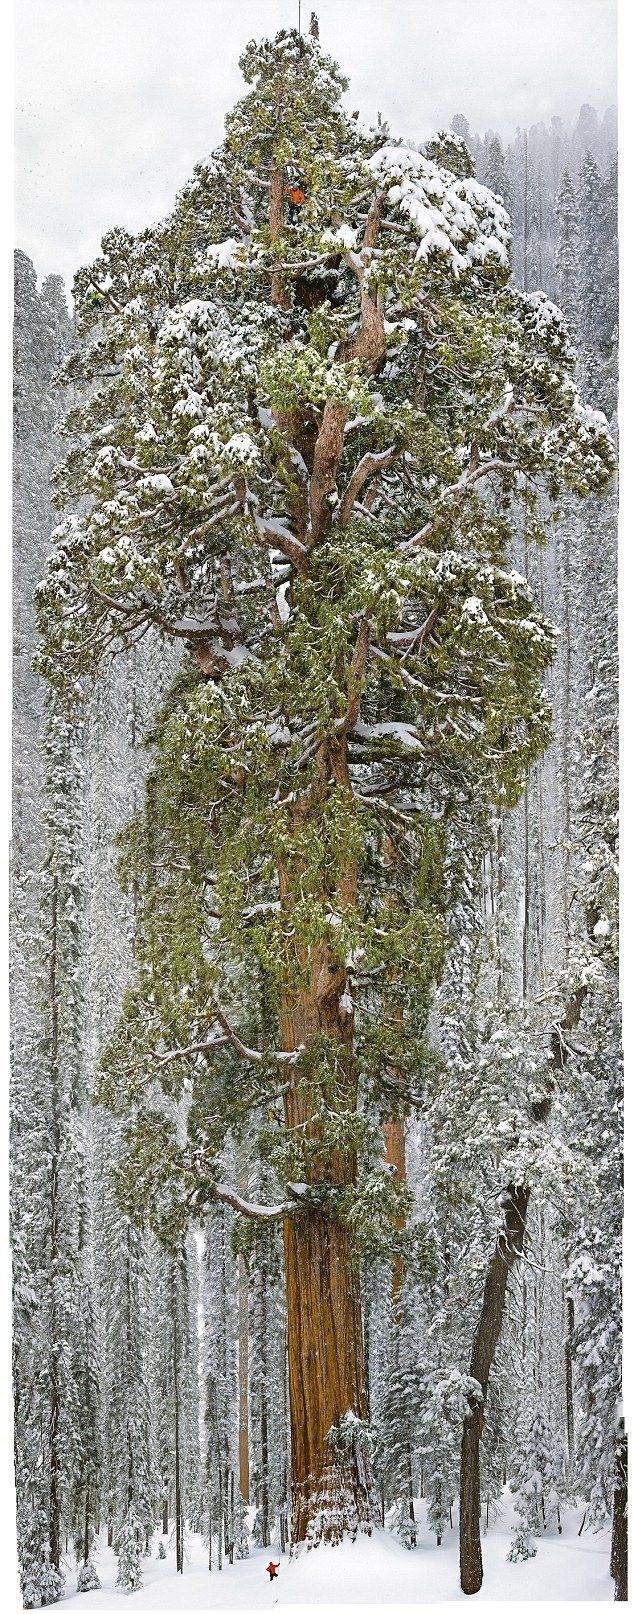 Sierra Nevada mountains in California, 5,000 feet above sea level. Here lives The President, a 247 foot (75m) Giant Sequoia tree, 3,200 year old, with a 27 foot (8m) wide trunk, 2nd largest tree in the world.